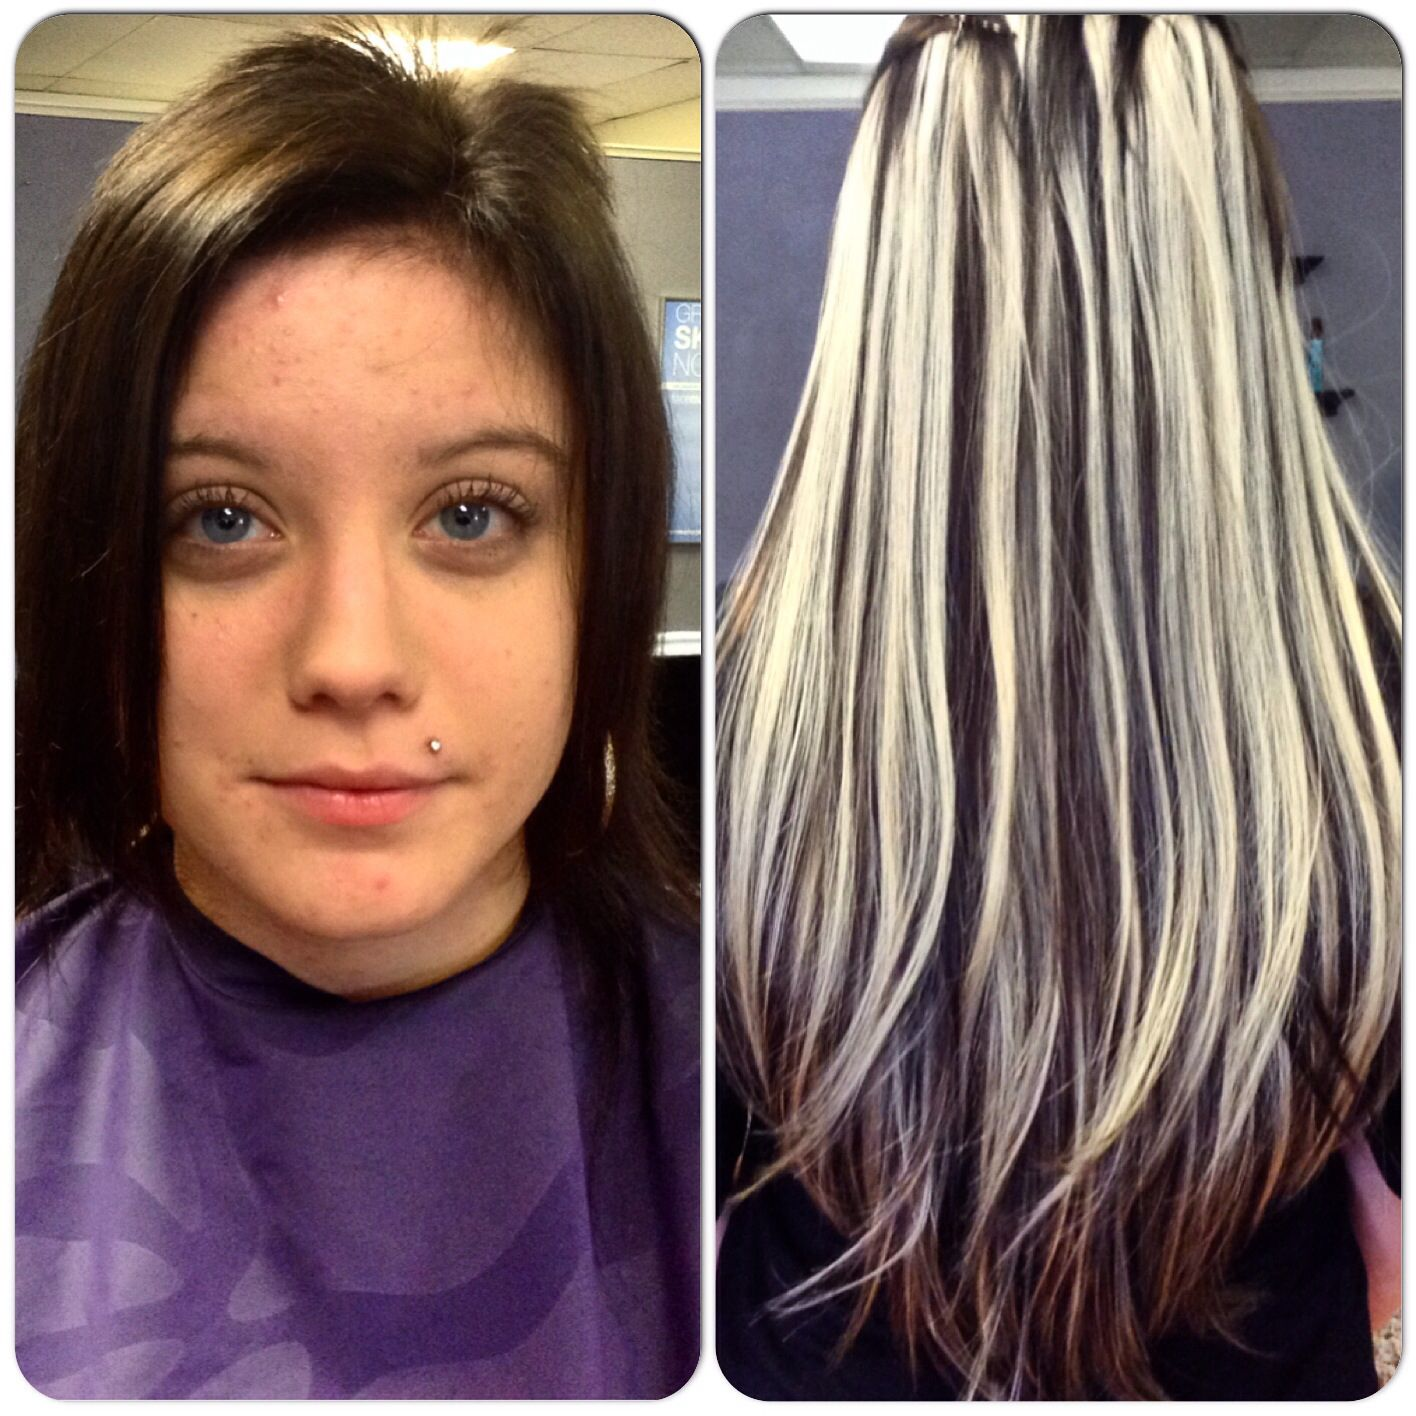 Before And After Photo Hotheads Hair Extensions Hairbytammy